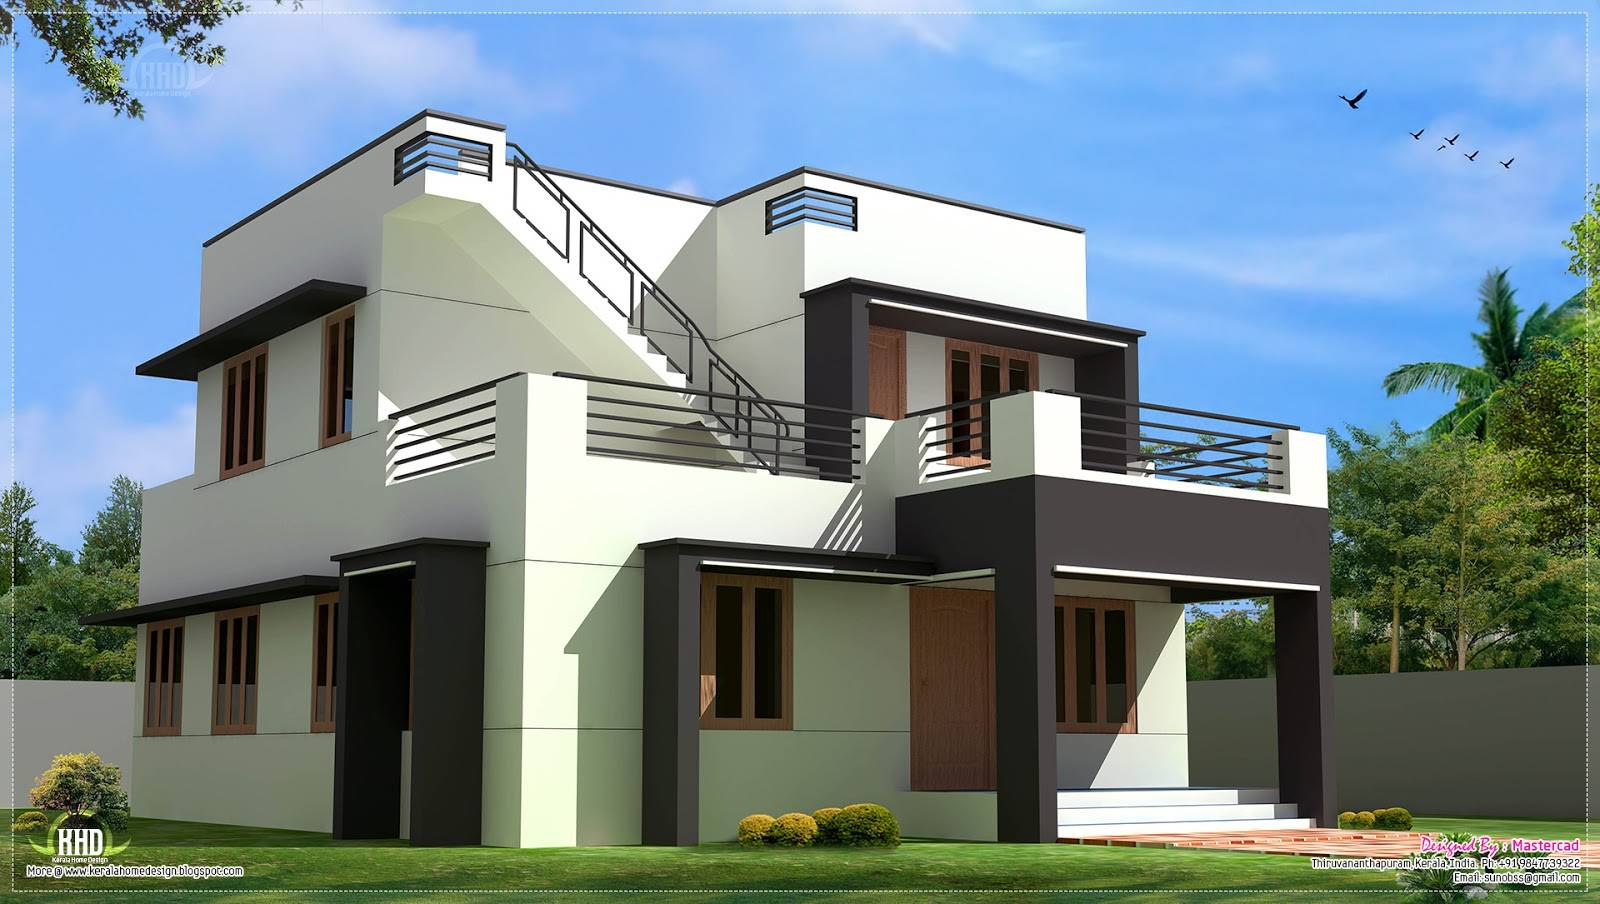 House Designs Modern Small Decorating Dma Homes